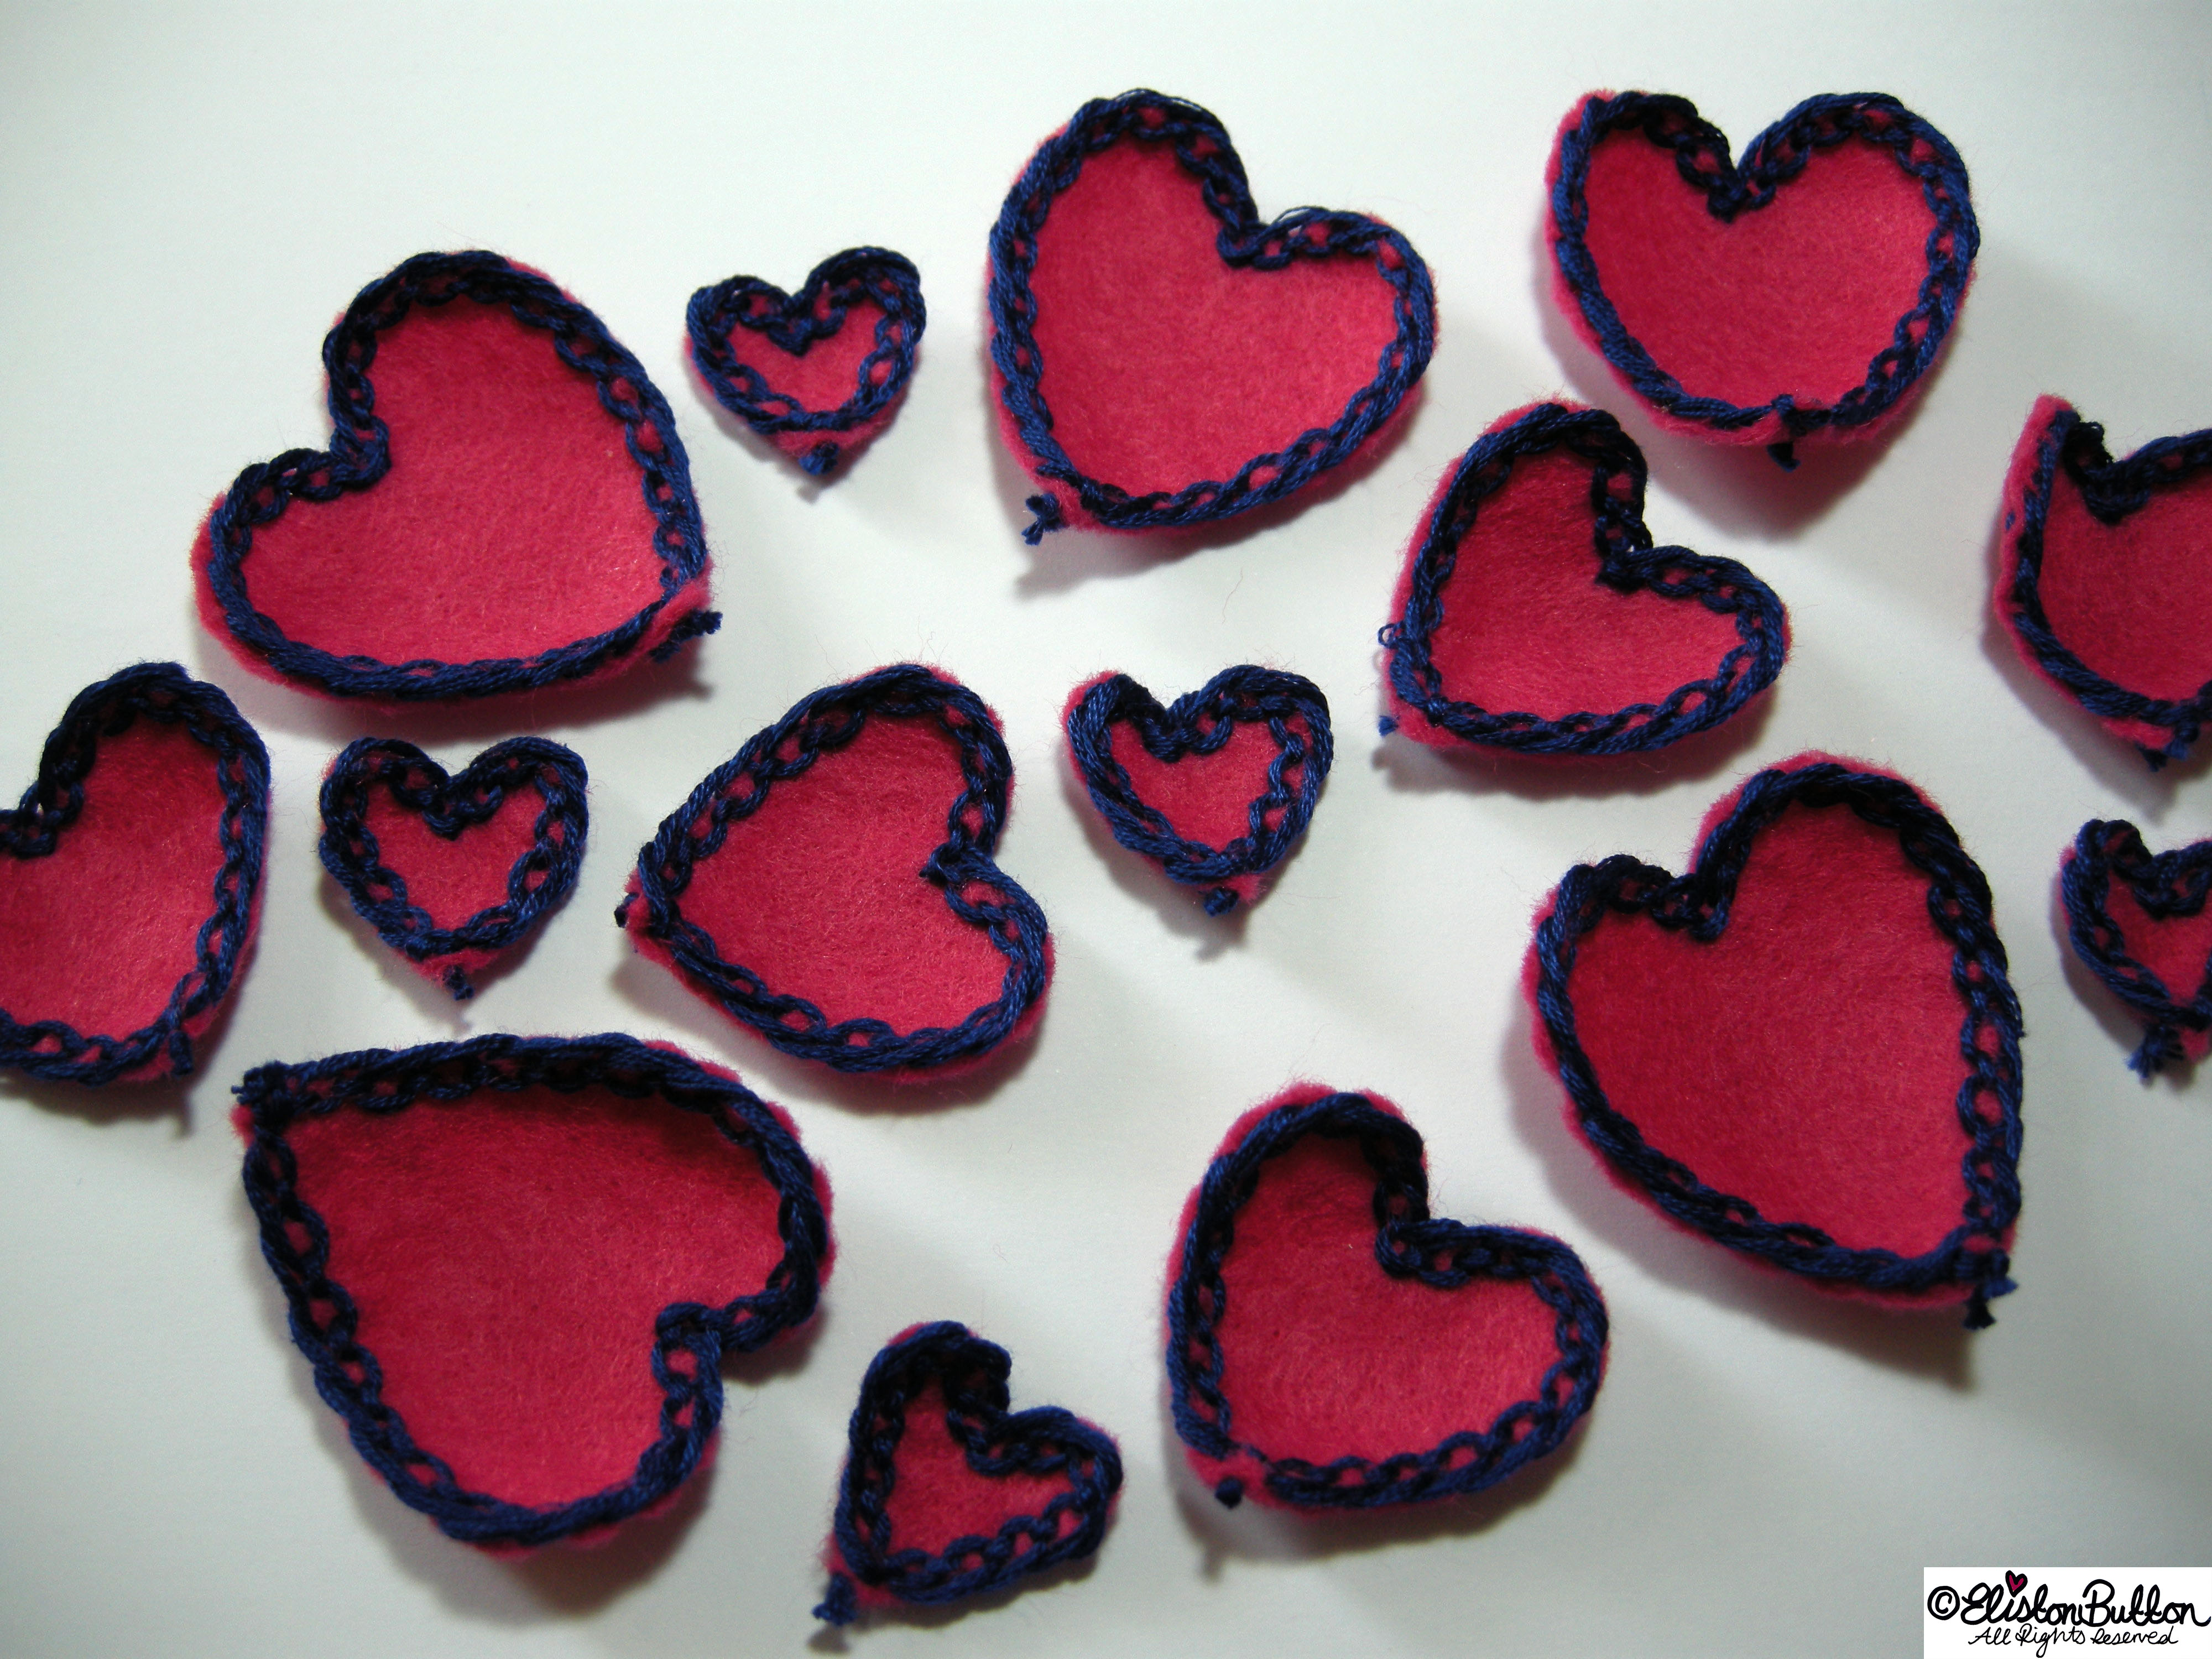 Pink Felt Heart Petals with Navy Blue Lace-Like Embroidery - 27 Before 27 - Pink Hearts at www.elistonbutton.com - Eliston Button - That Crafty Kid – Art, Design, Craft & Adventure.